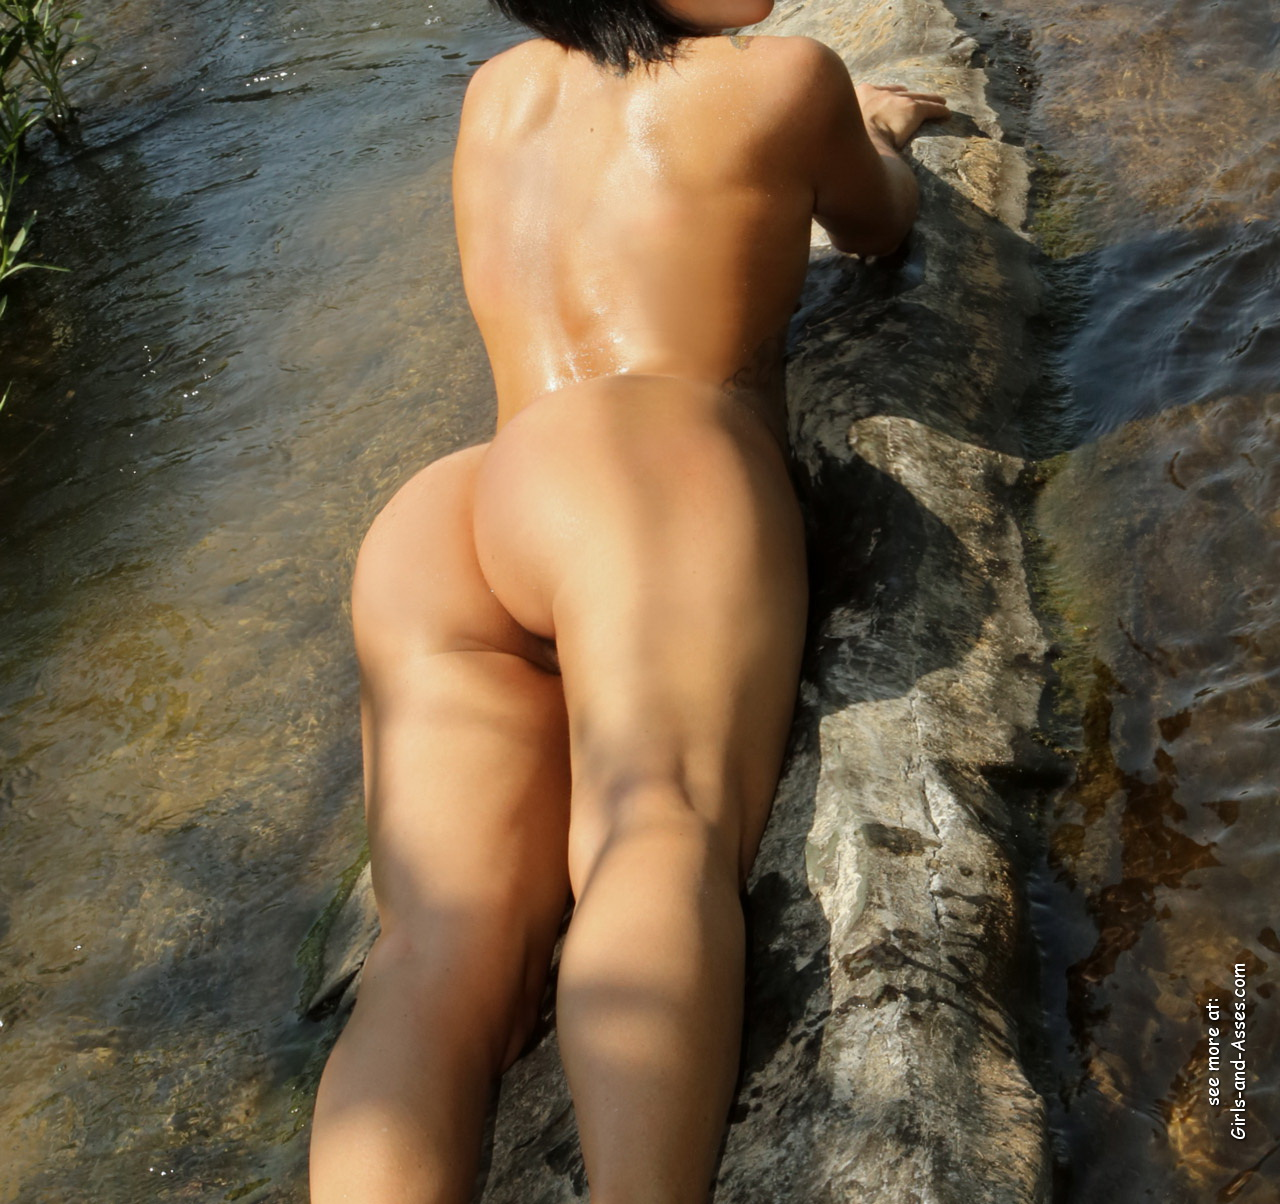 naked girl with cute butt on the river photo 04241